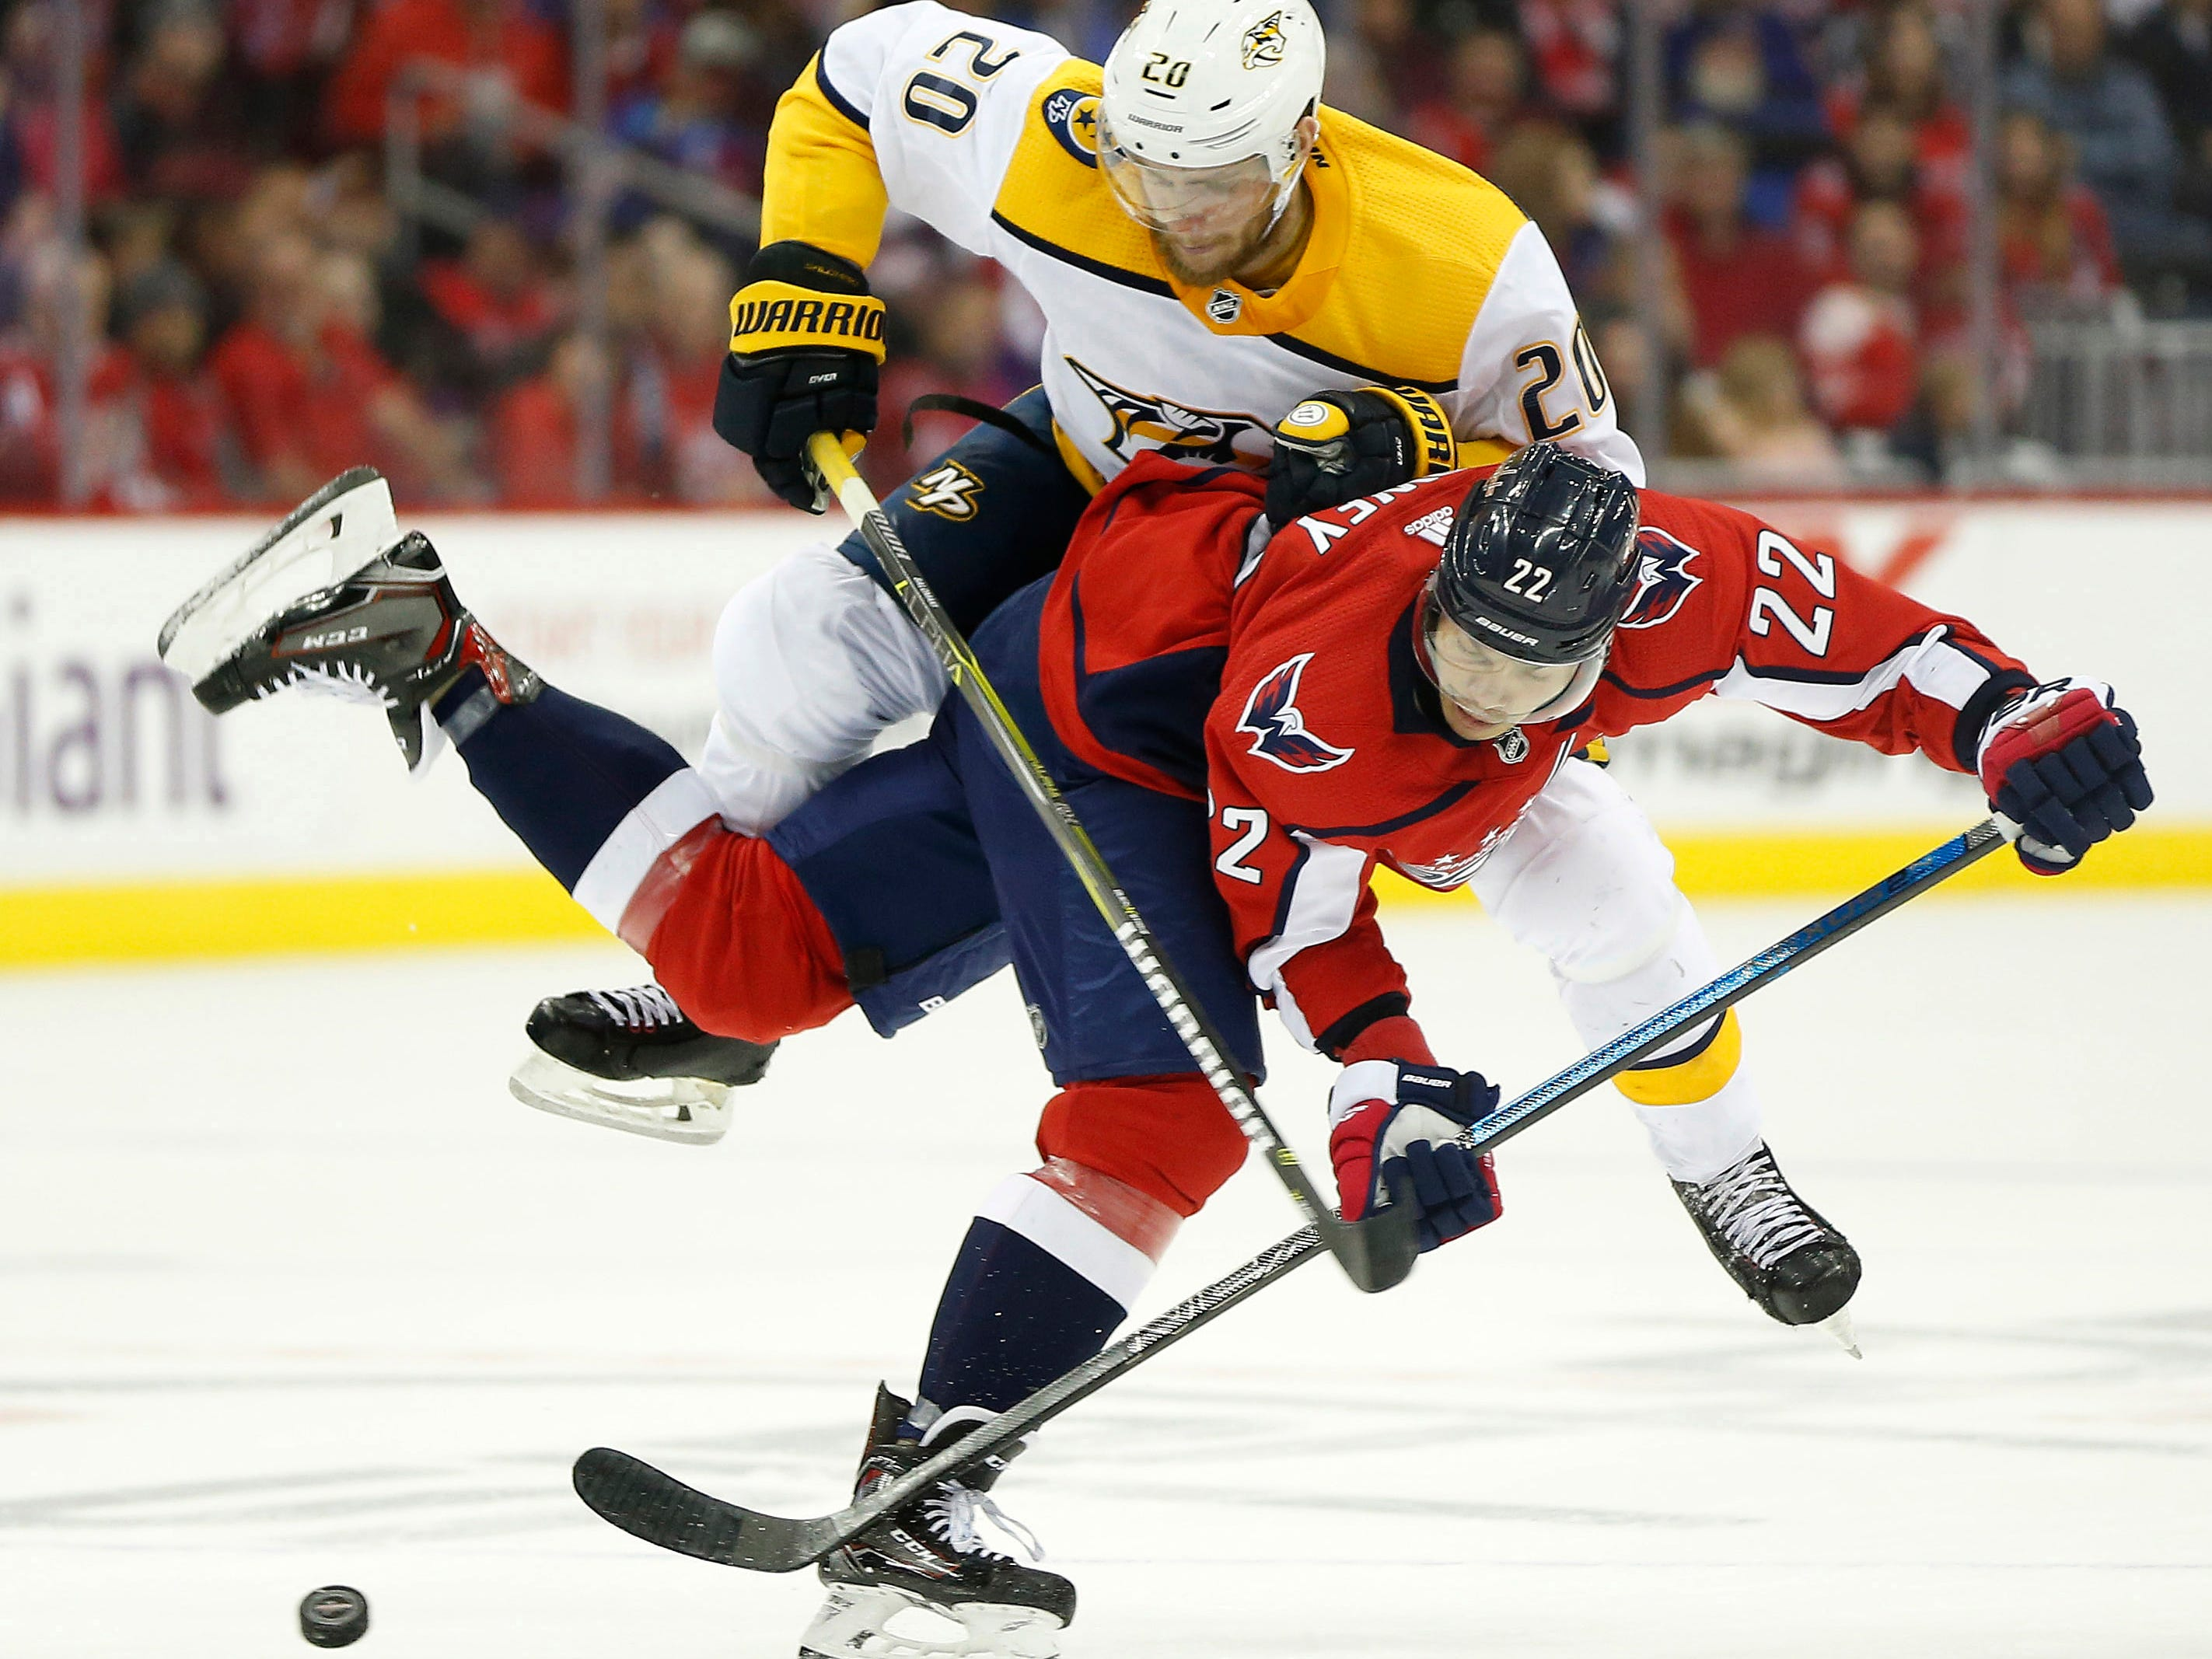 Washington Capitals defenseman Madison Bowey (22) attempts to control the puck as Nashville Predators right wing Miikka Salomaki (20) defends during the second period at Capital One Arena.